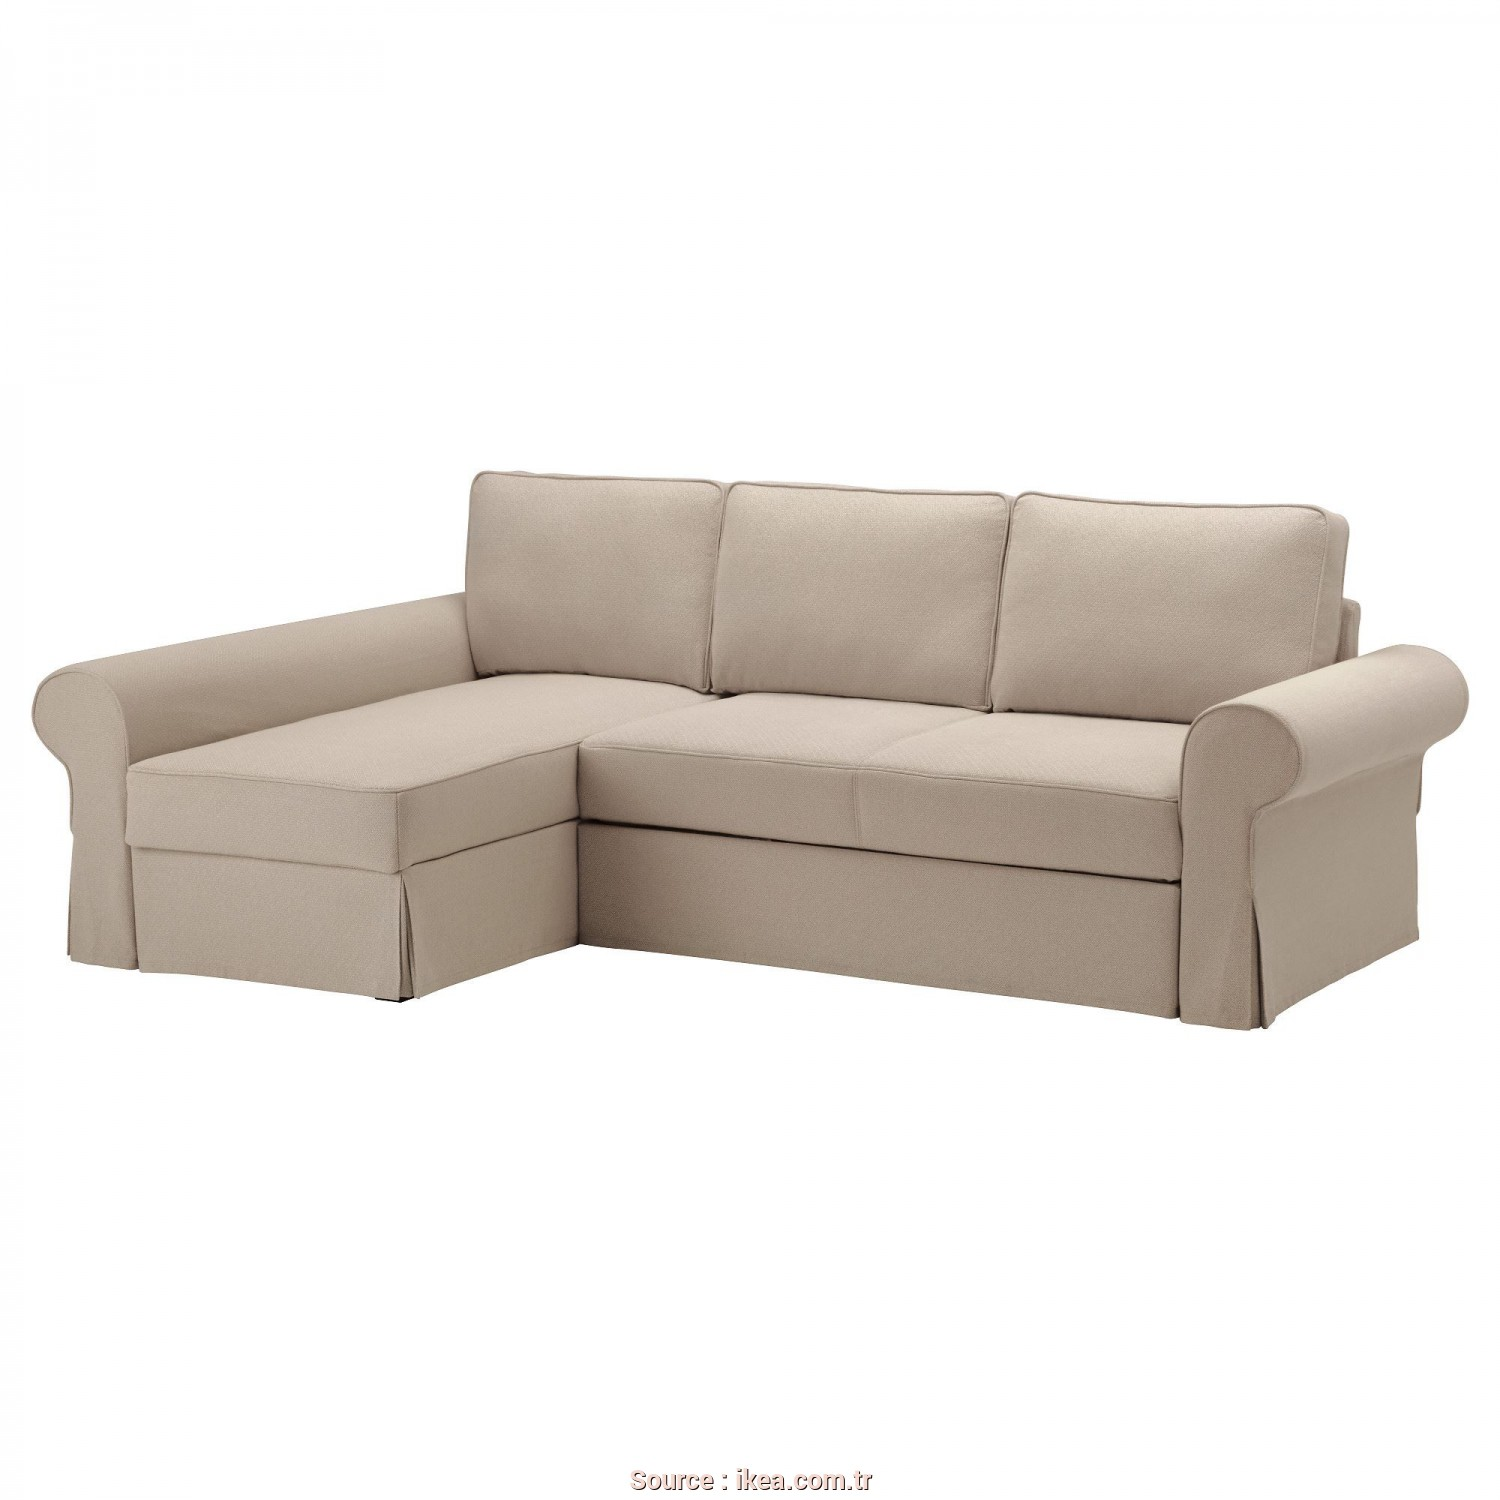 Ikea Backabro 2 Seater, Favoloso BACKABRO/MARIEBY 2-Seat Sofa, With Chaise Longue Hylte Beige